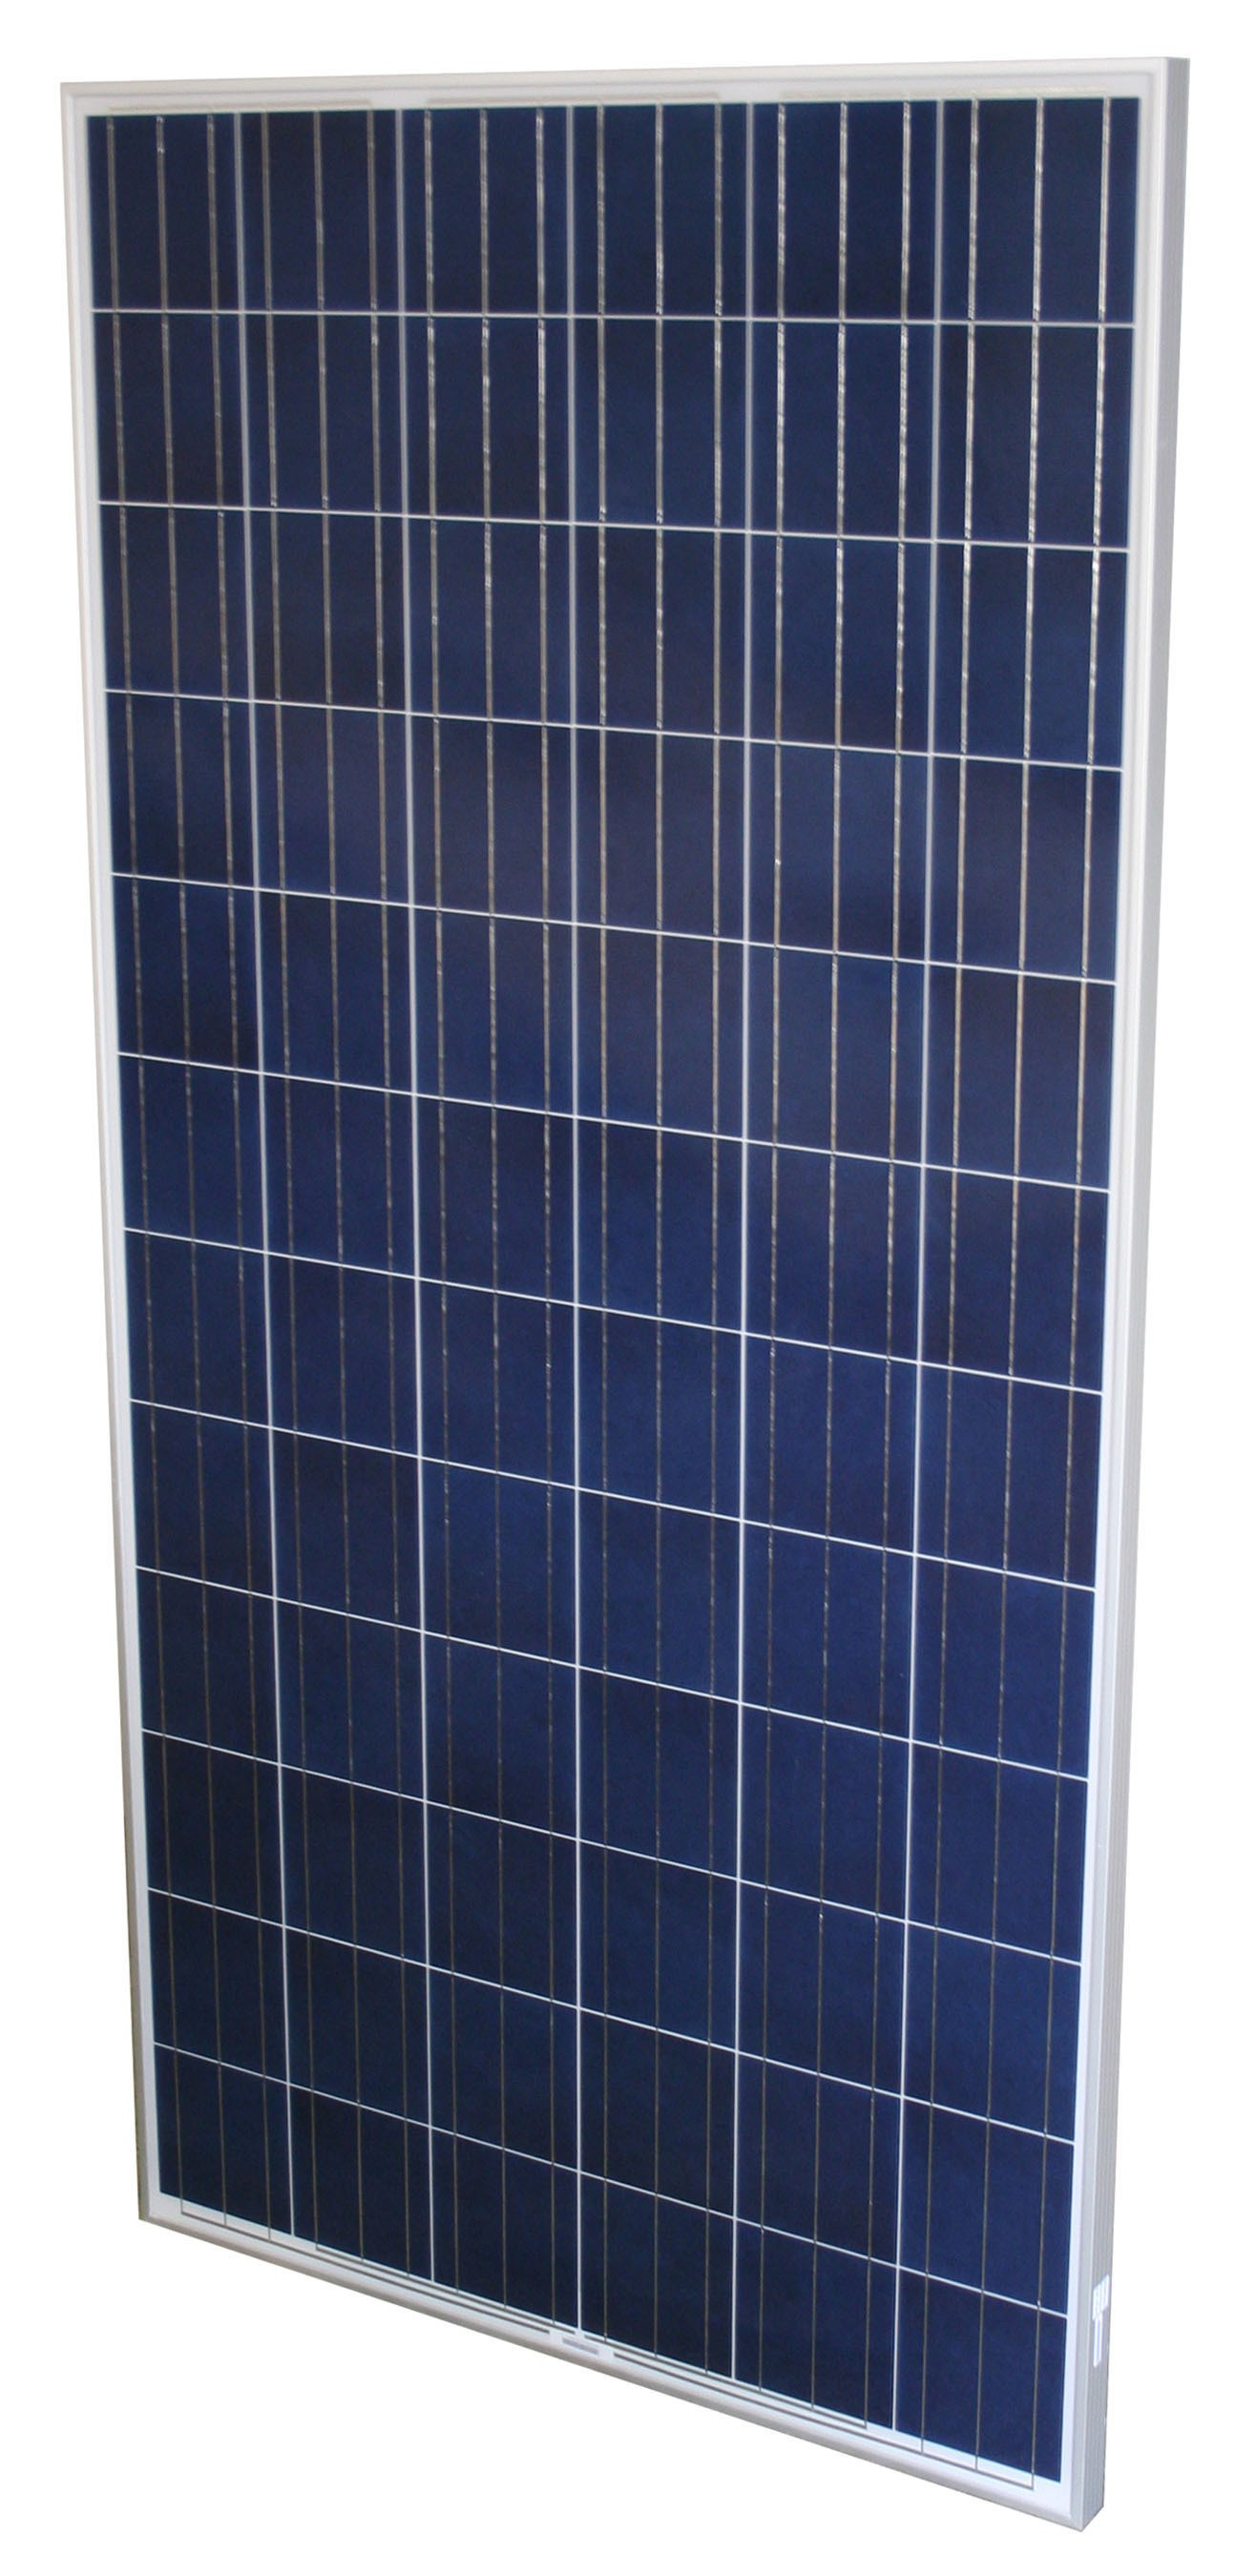 SunTech 300 Watt Poly Crystalline Solar Panel